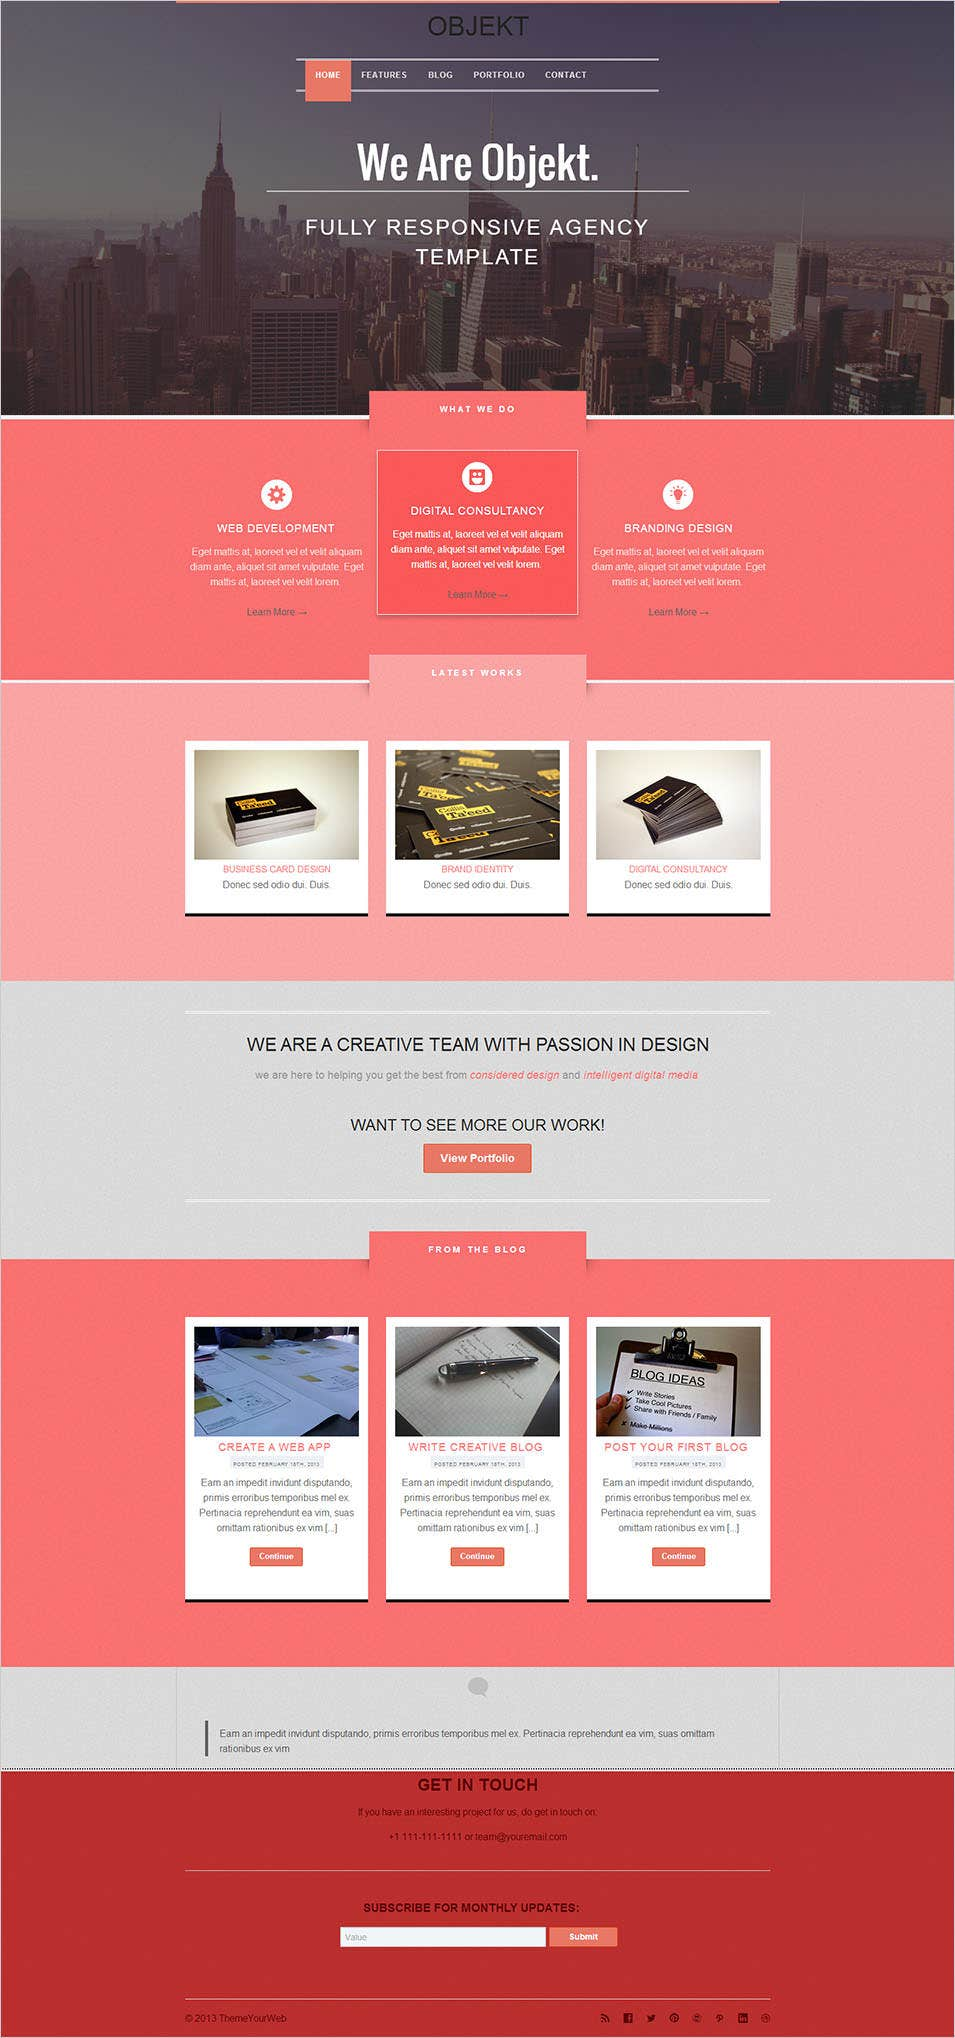 20 Best Flat Design Website Templates | Free & Premium Templates